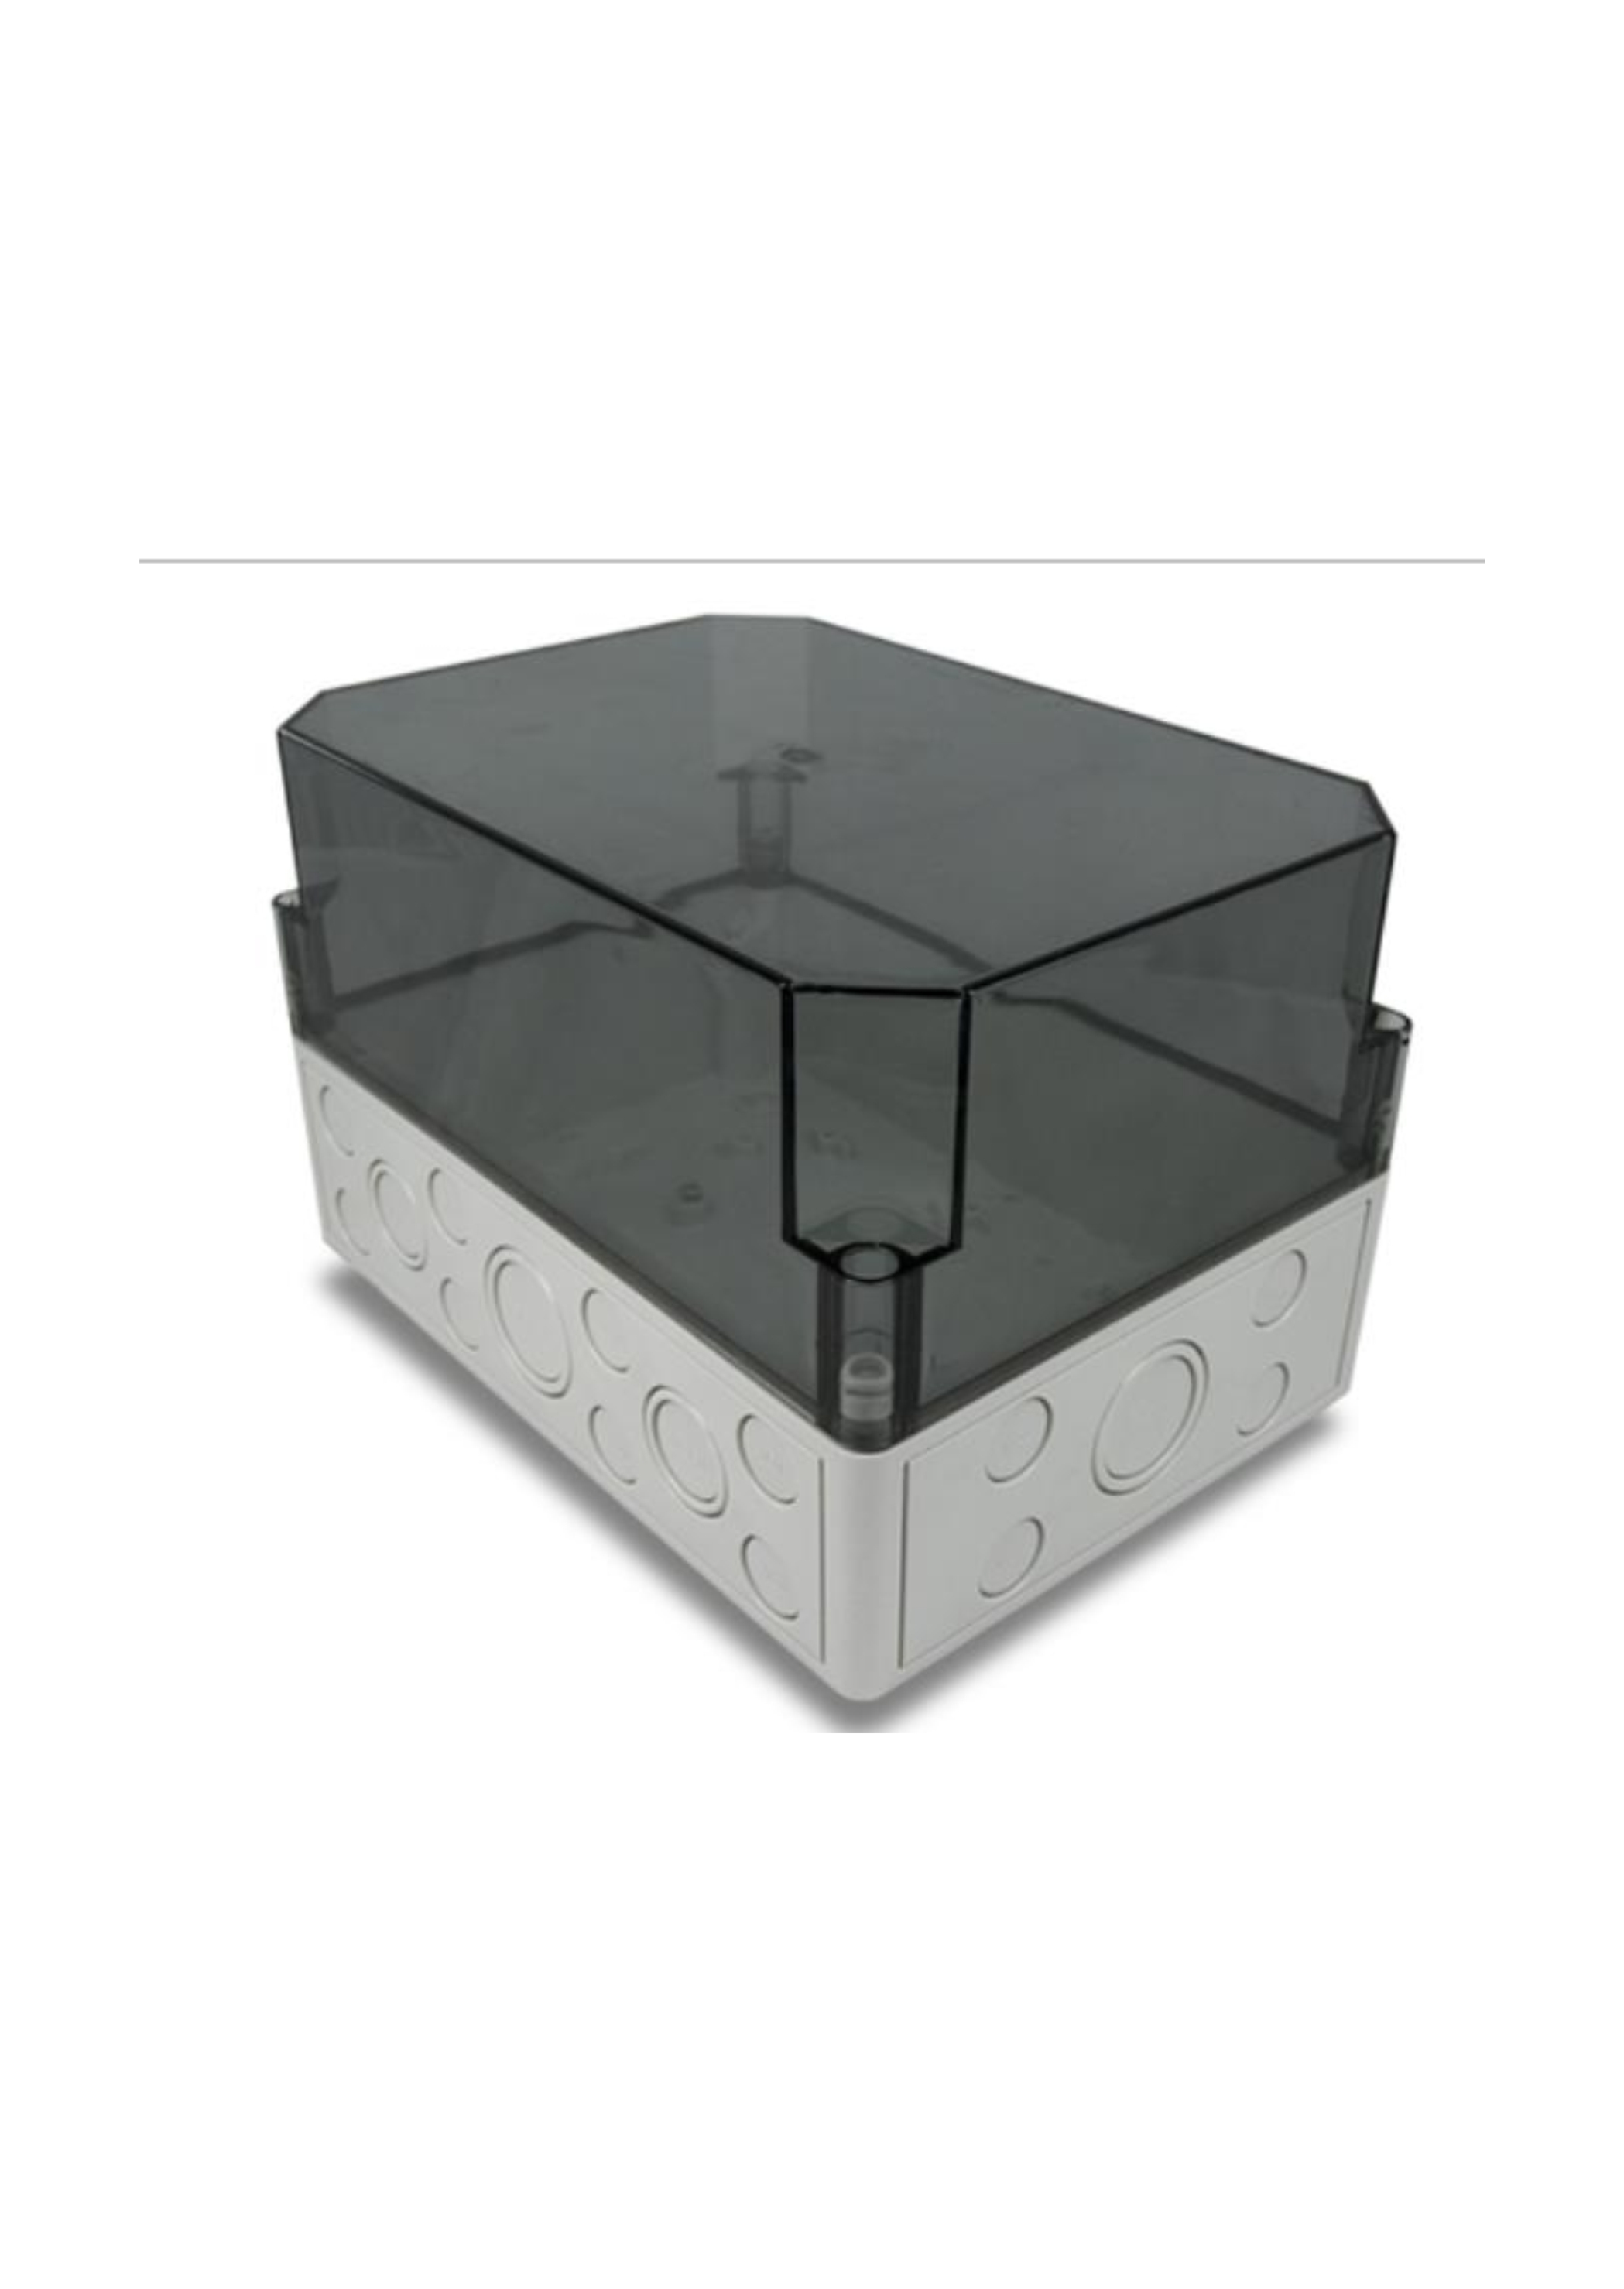 DIN Mounting Box - Large (up to 6 DIN rail modules...